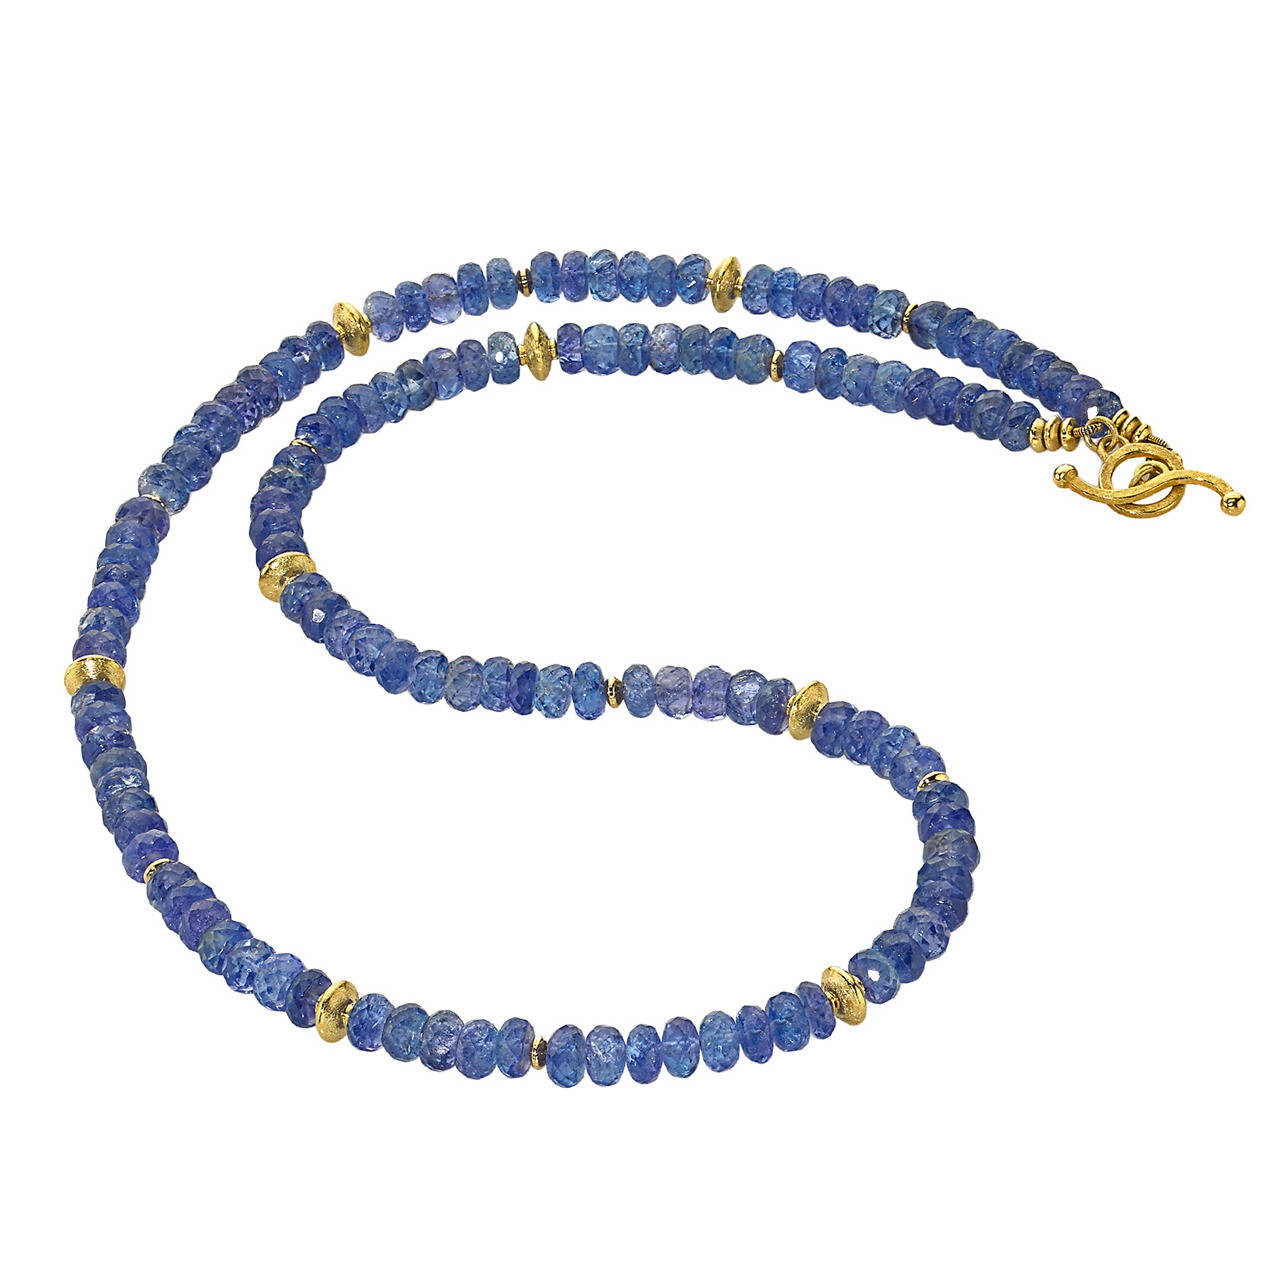 Barbara Heinrich Tanzanite Gold Necklace,OFFERED BY  SZOR COLLECTIONS